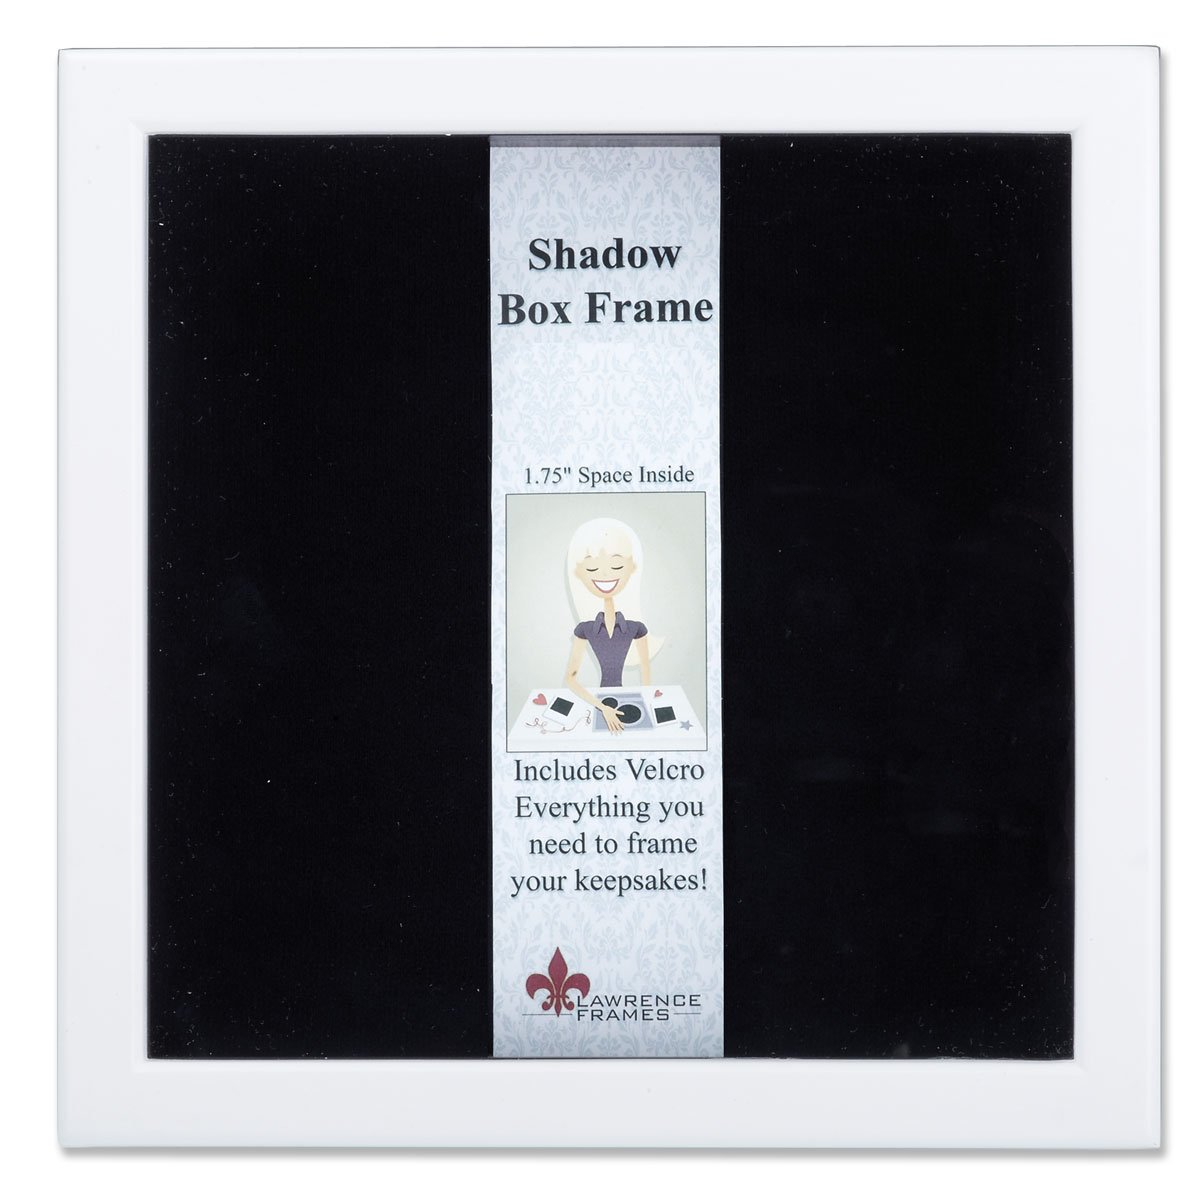 Lawrence Frames 790288 White Wood Shadow Box Picture Frame, 8 by 8-Inch